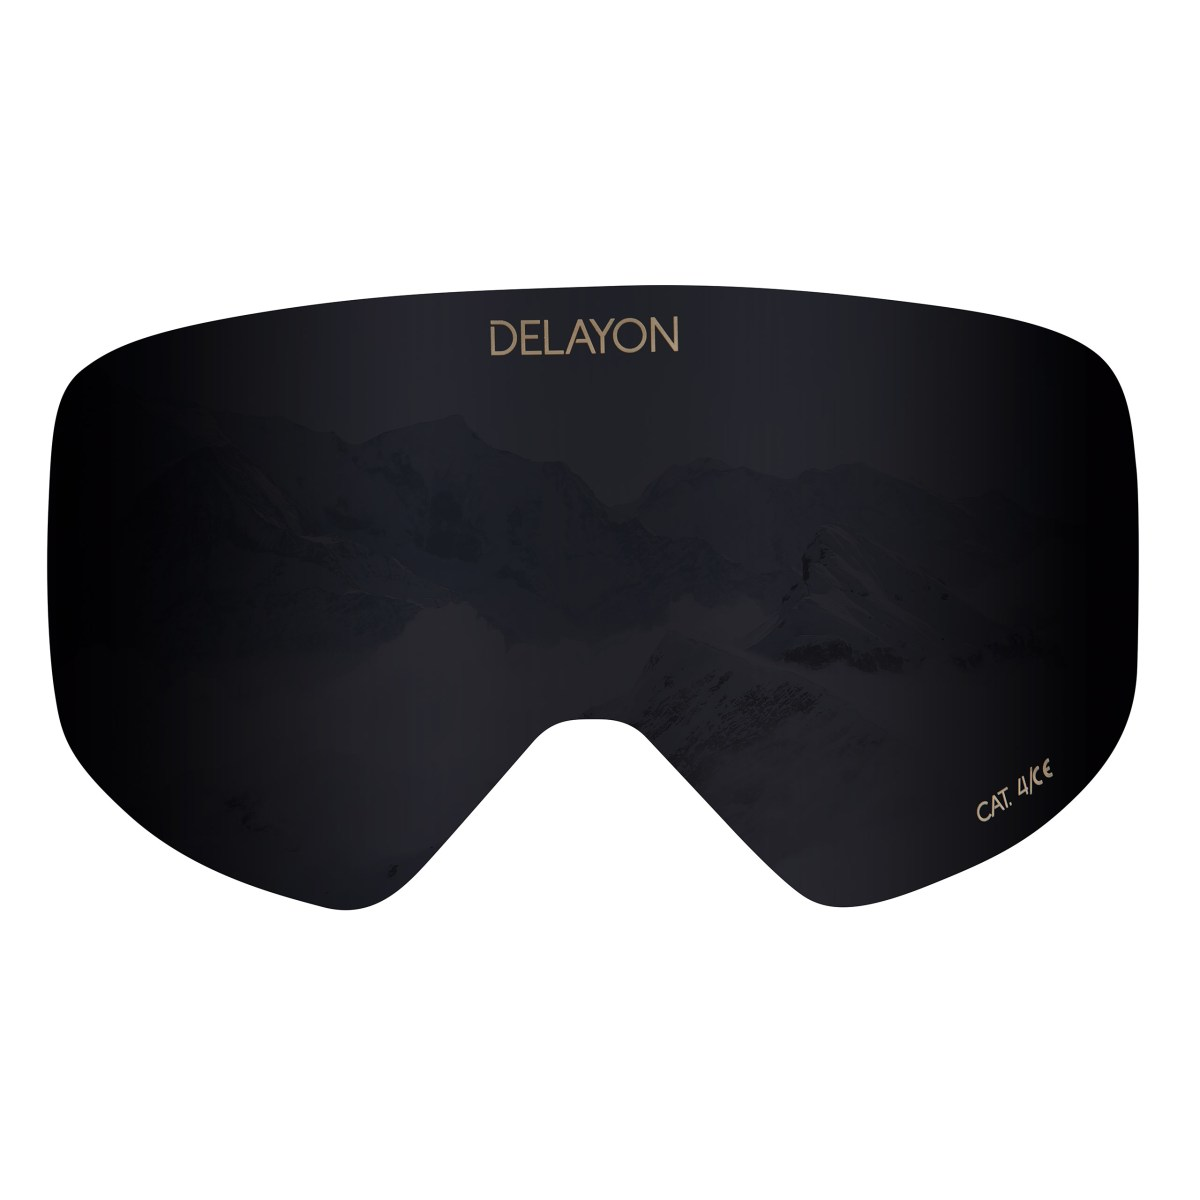 DELAYON Eyewear Core 2.0 Lens STRONG Black